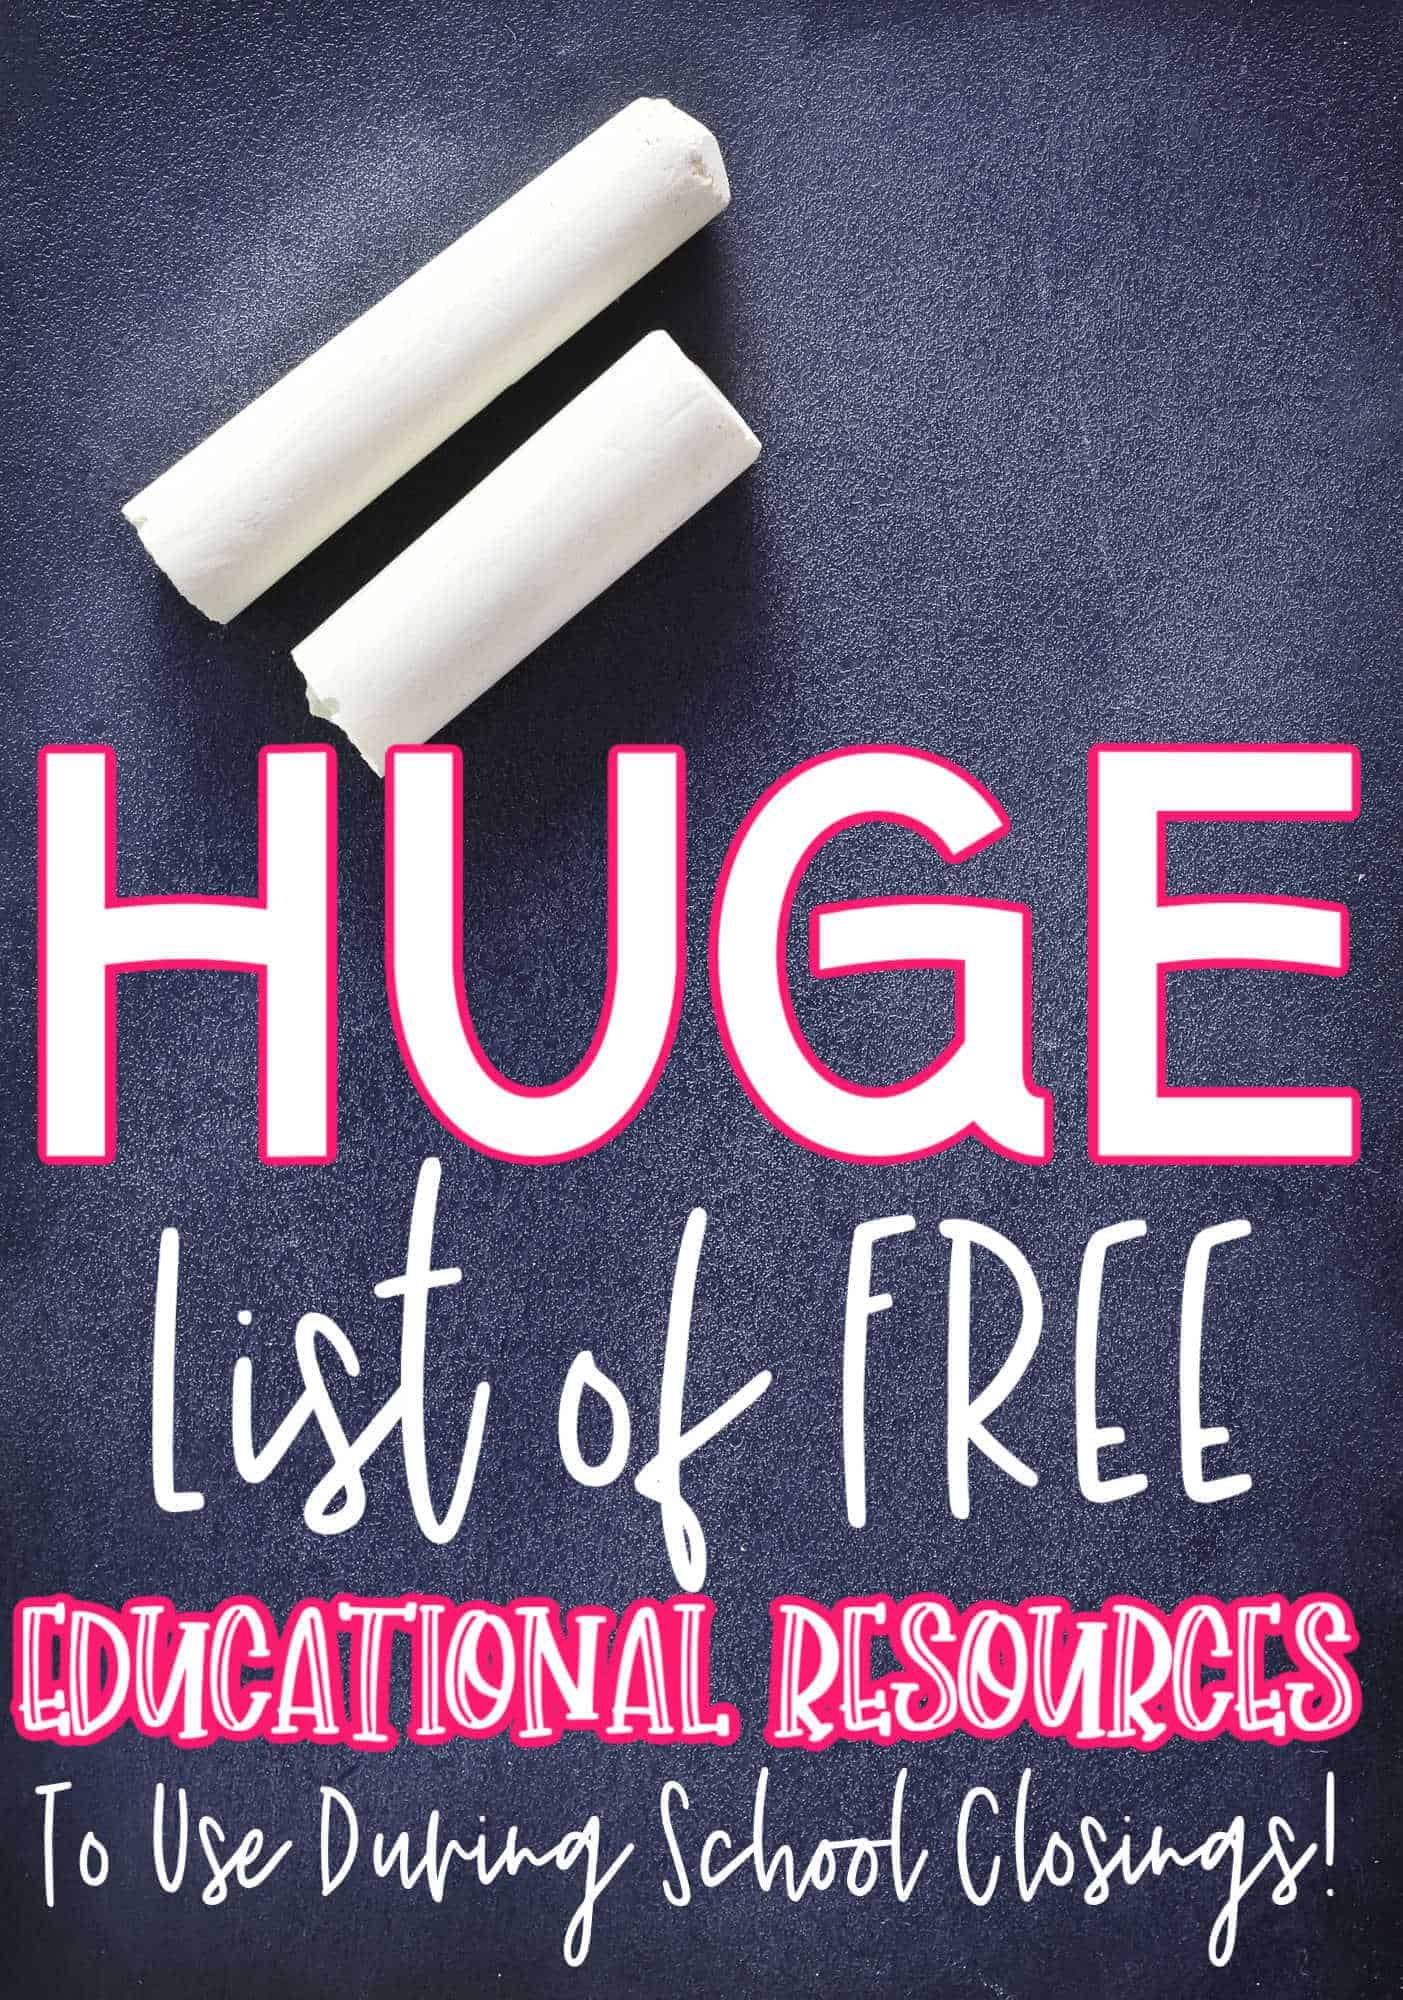 Educational Freebies to use at home